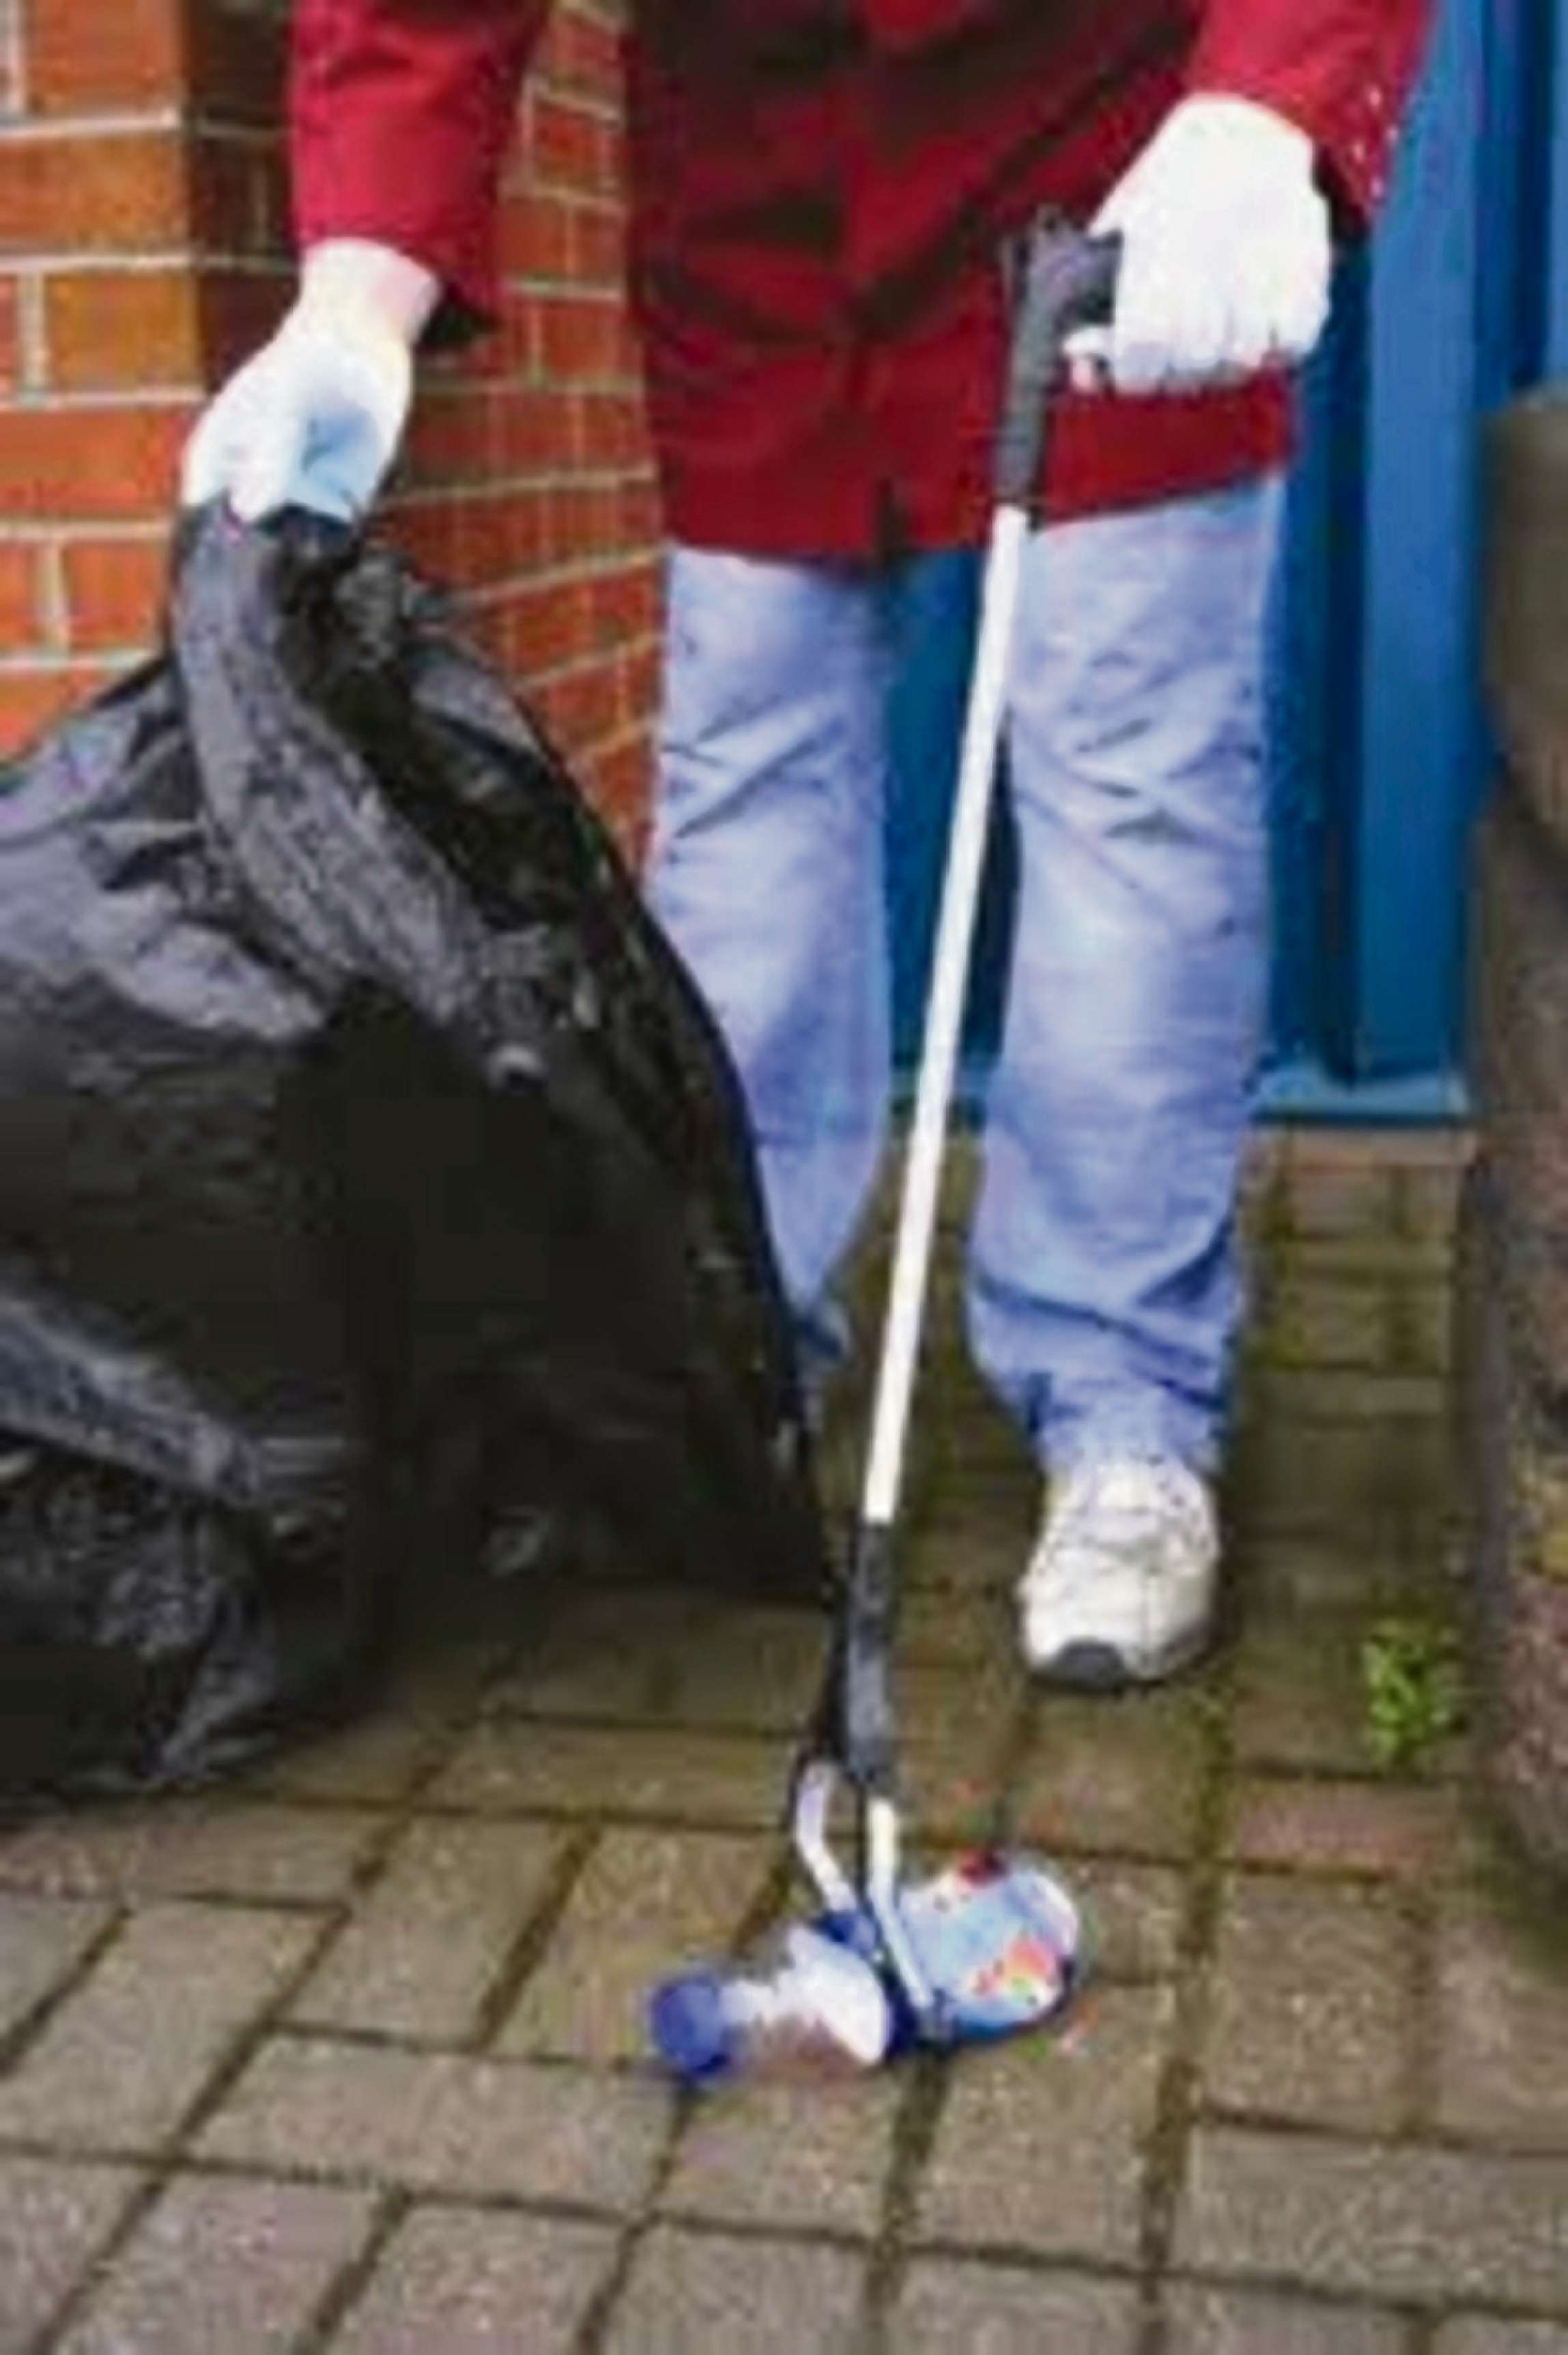 Action days planned to clean up streets in Rochford District